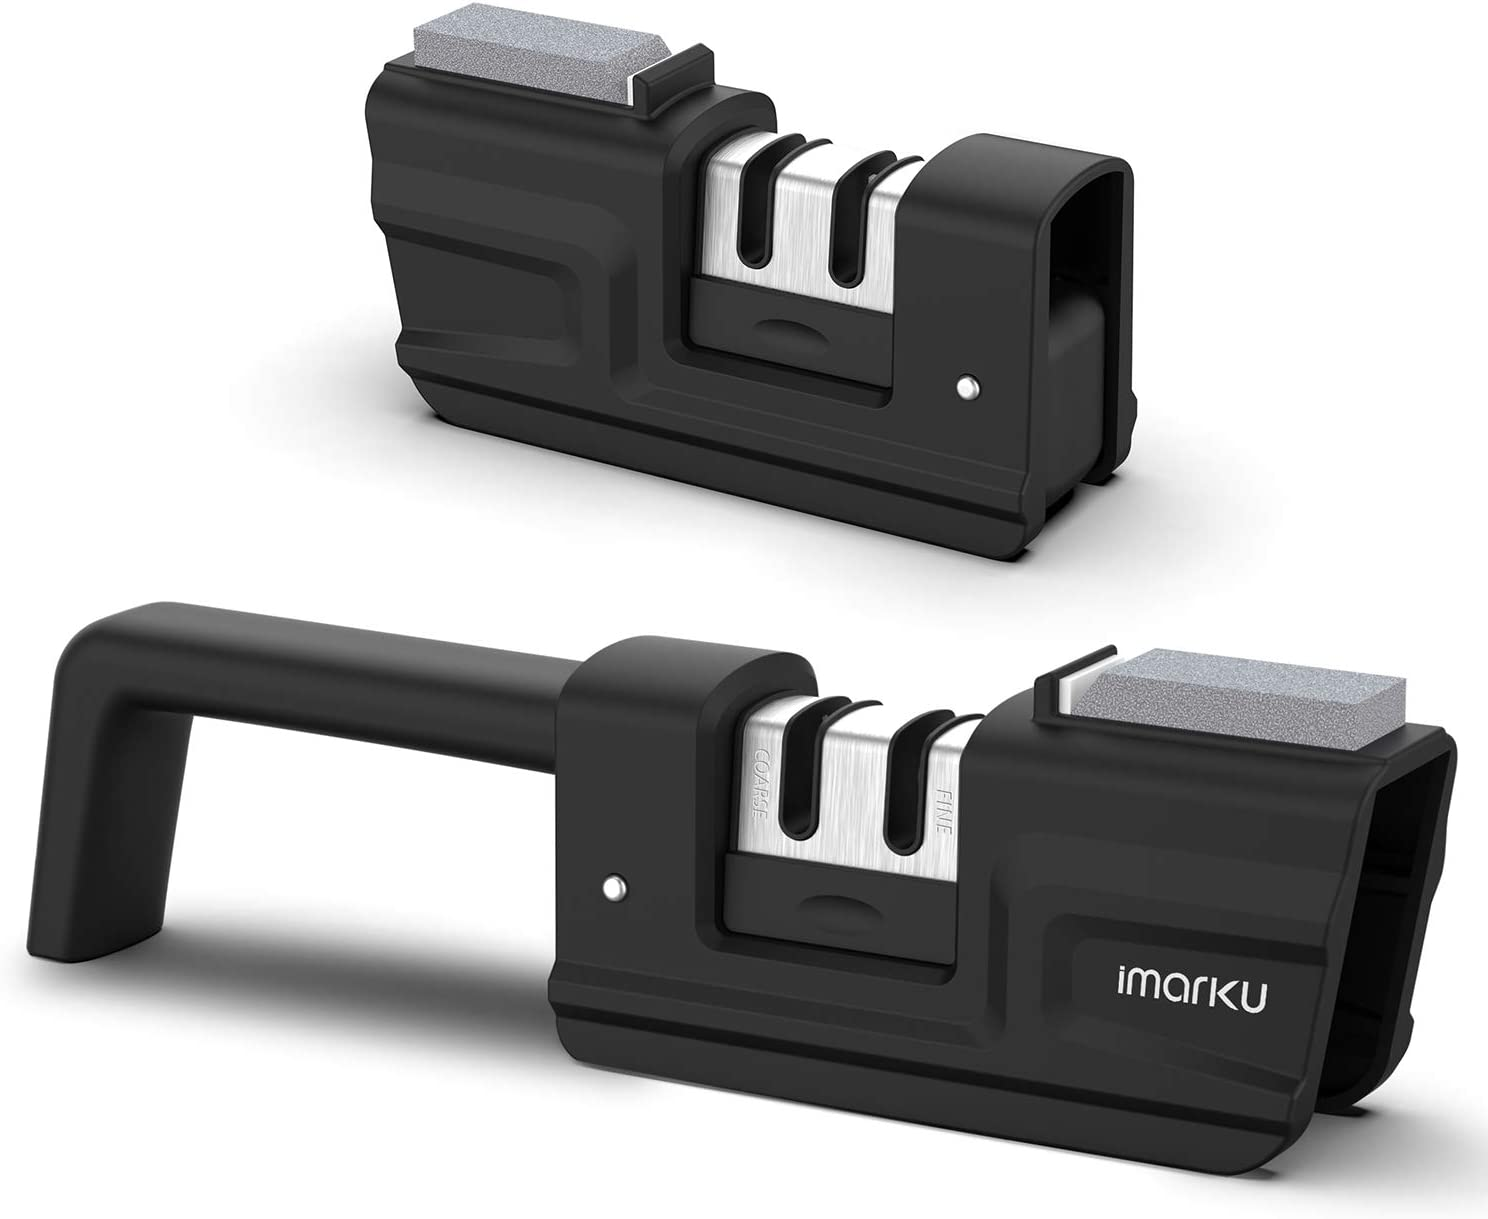 2. Imarku 2 Stage Knife Sharpener